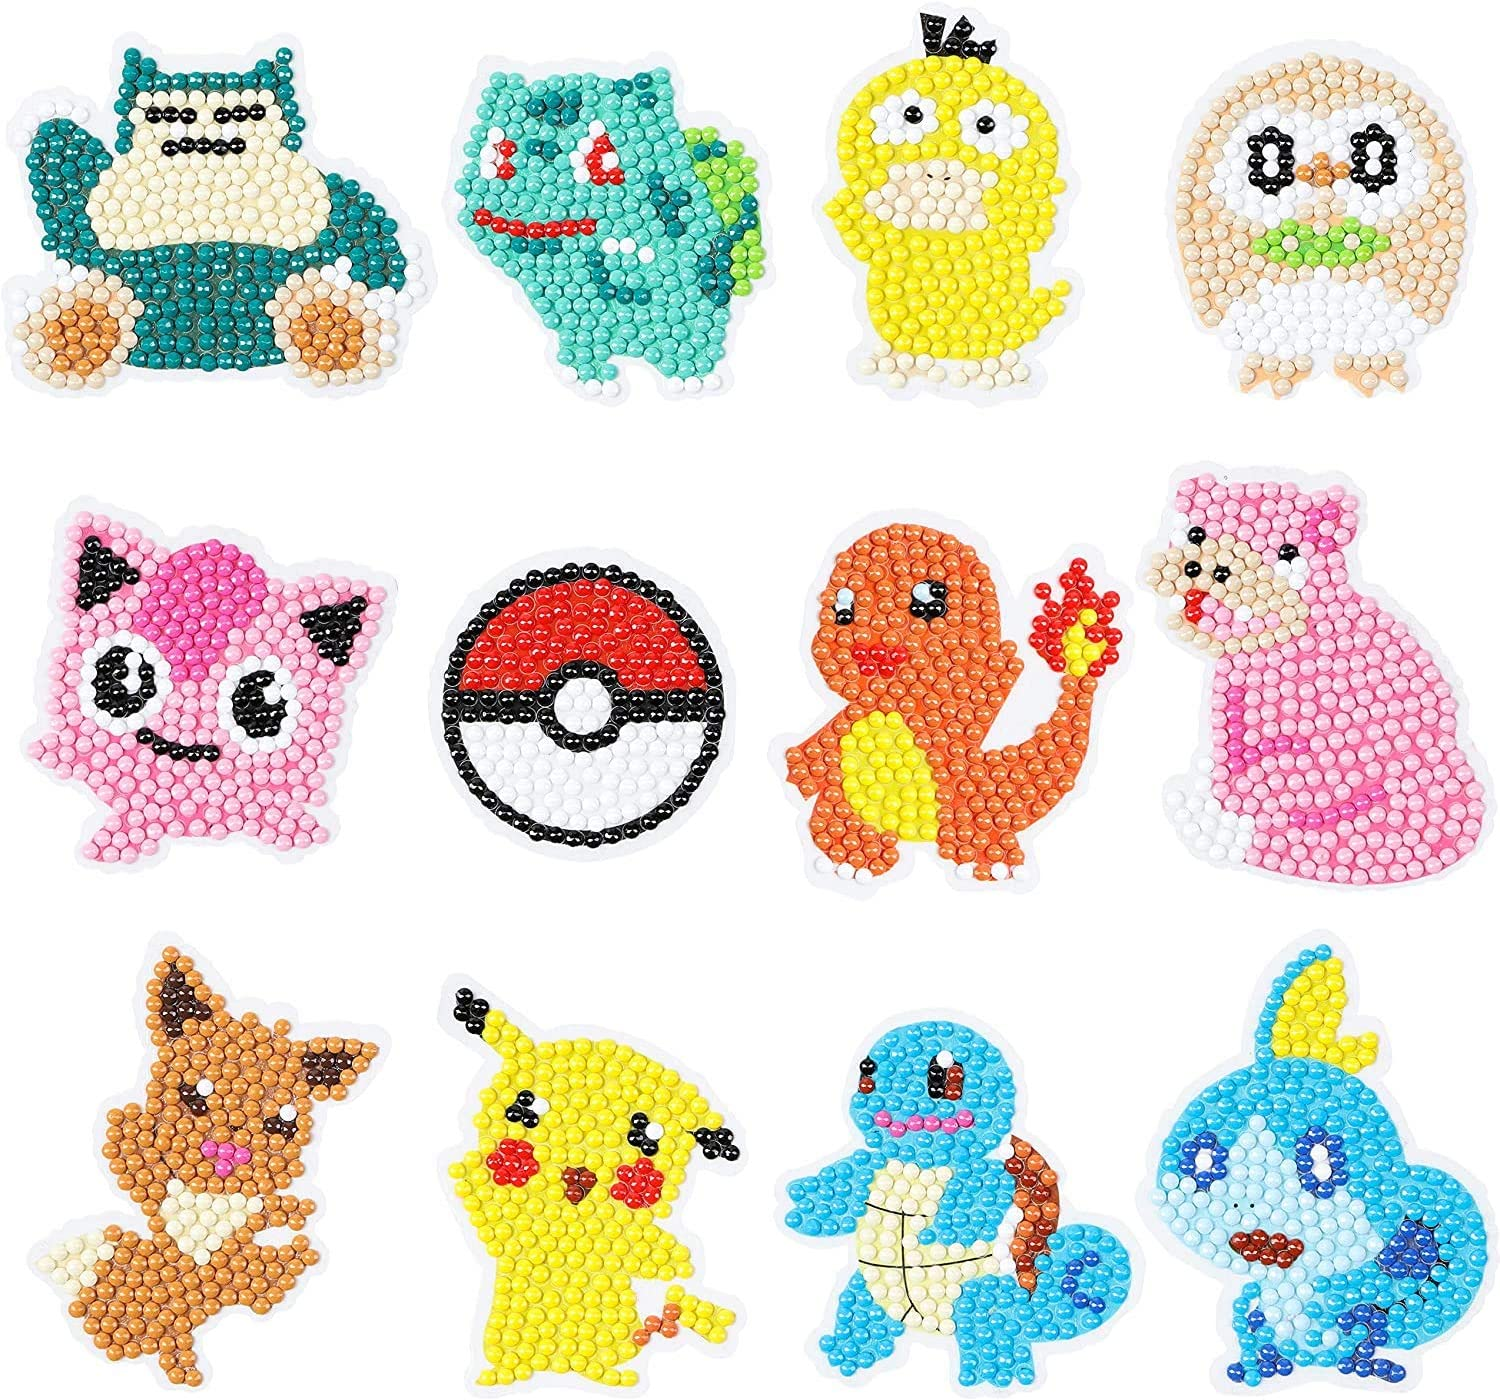 S SNUOY 5D Diamond Painting Stickers Kits for Kids Animal Style Paint with Diamond Kits for Kids and Adult Beginners 37pcs Free Stickers